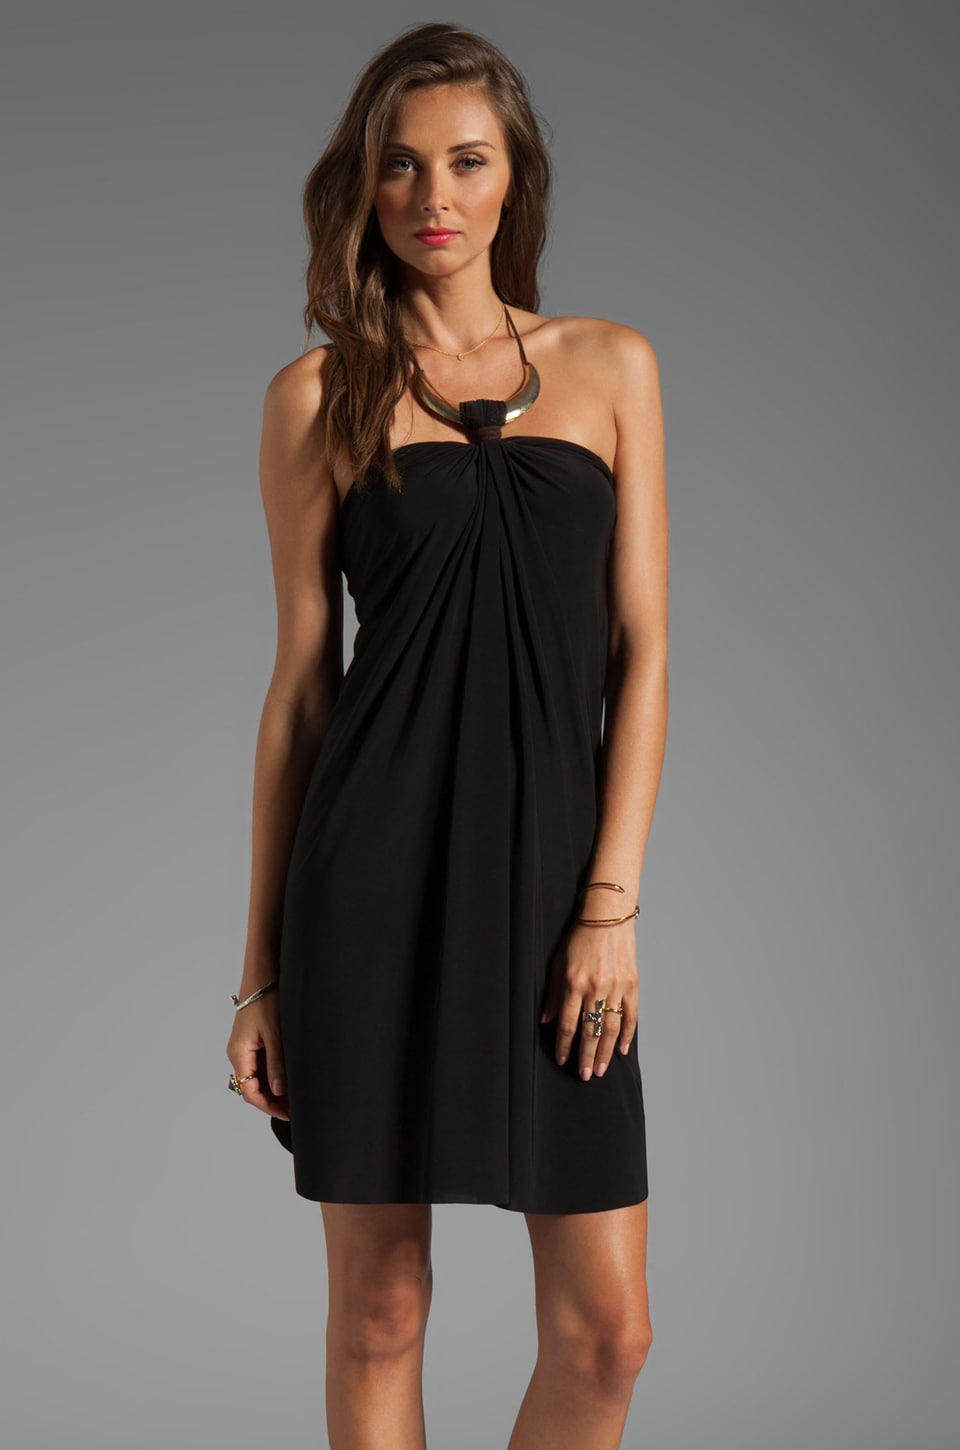 T-Bags LosAngeles Necklace Mini Dress in Black